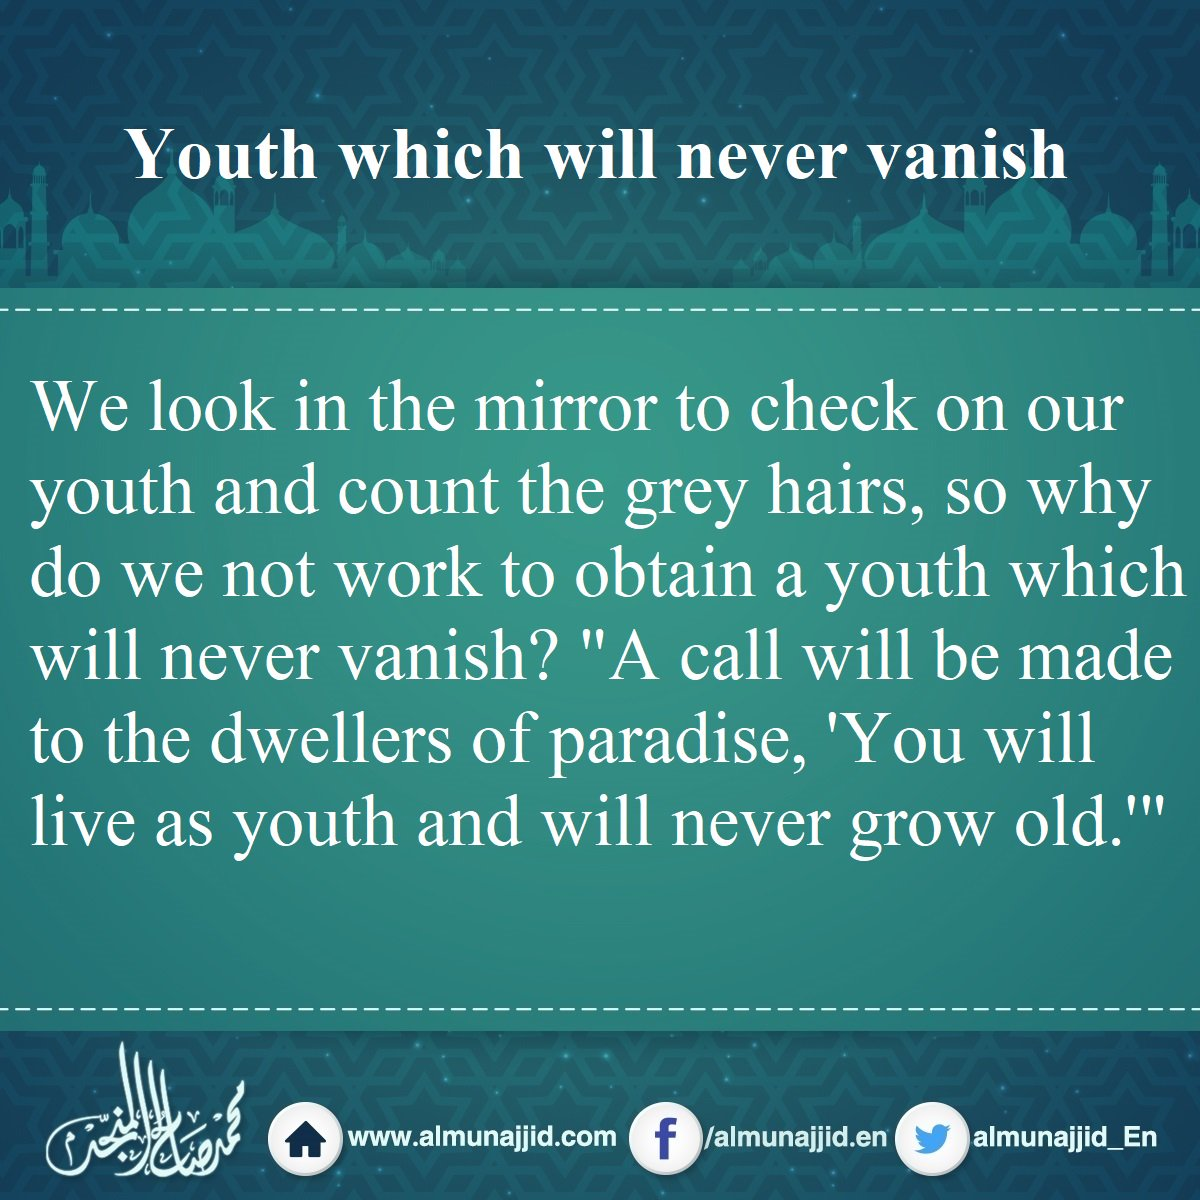 Youth which will never vanish  #youth #old #paradise <br>http://pic.twitter.com/6SVdqvVdD7